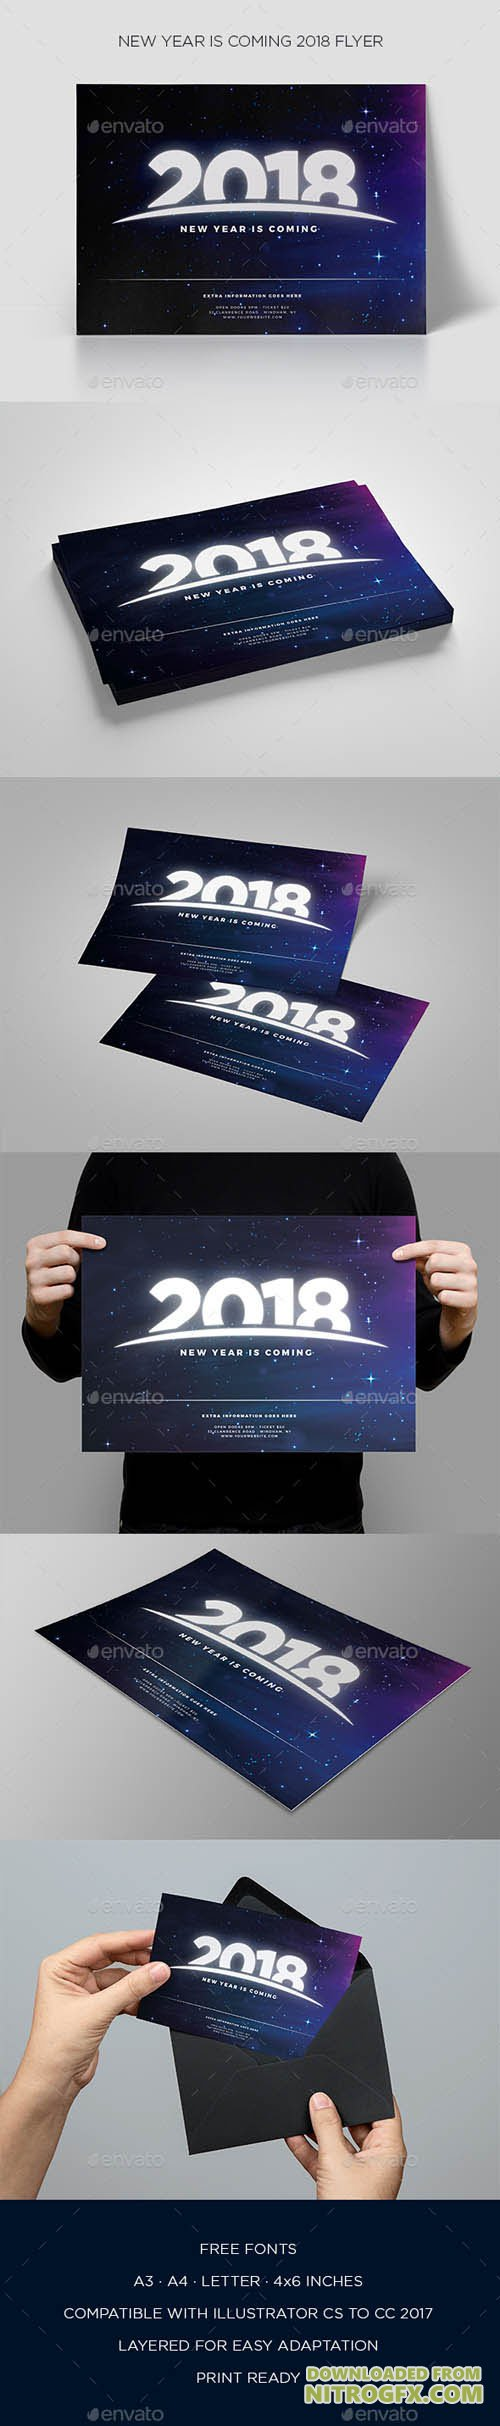 New Year Coming 2018 Flyer 20924533